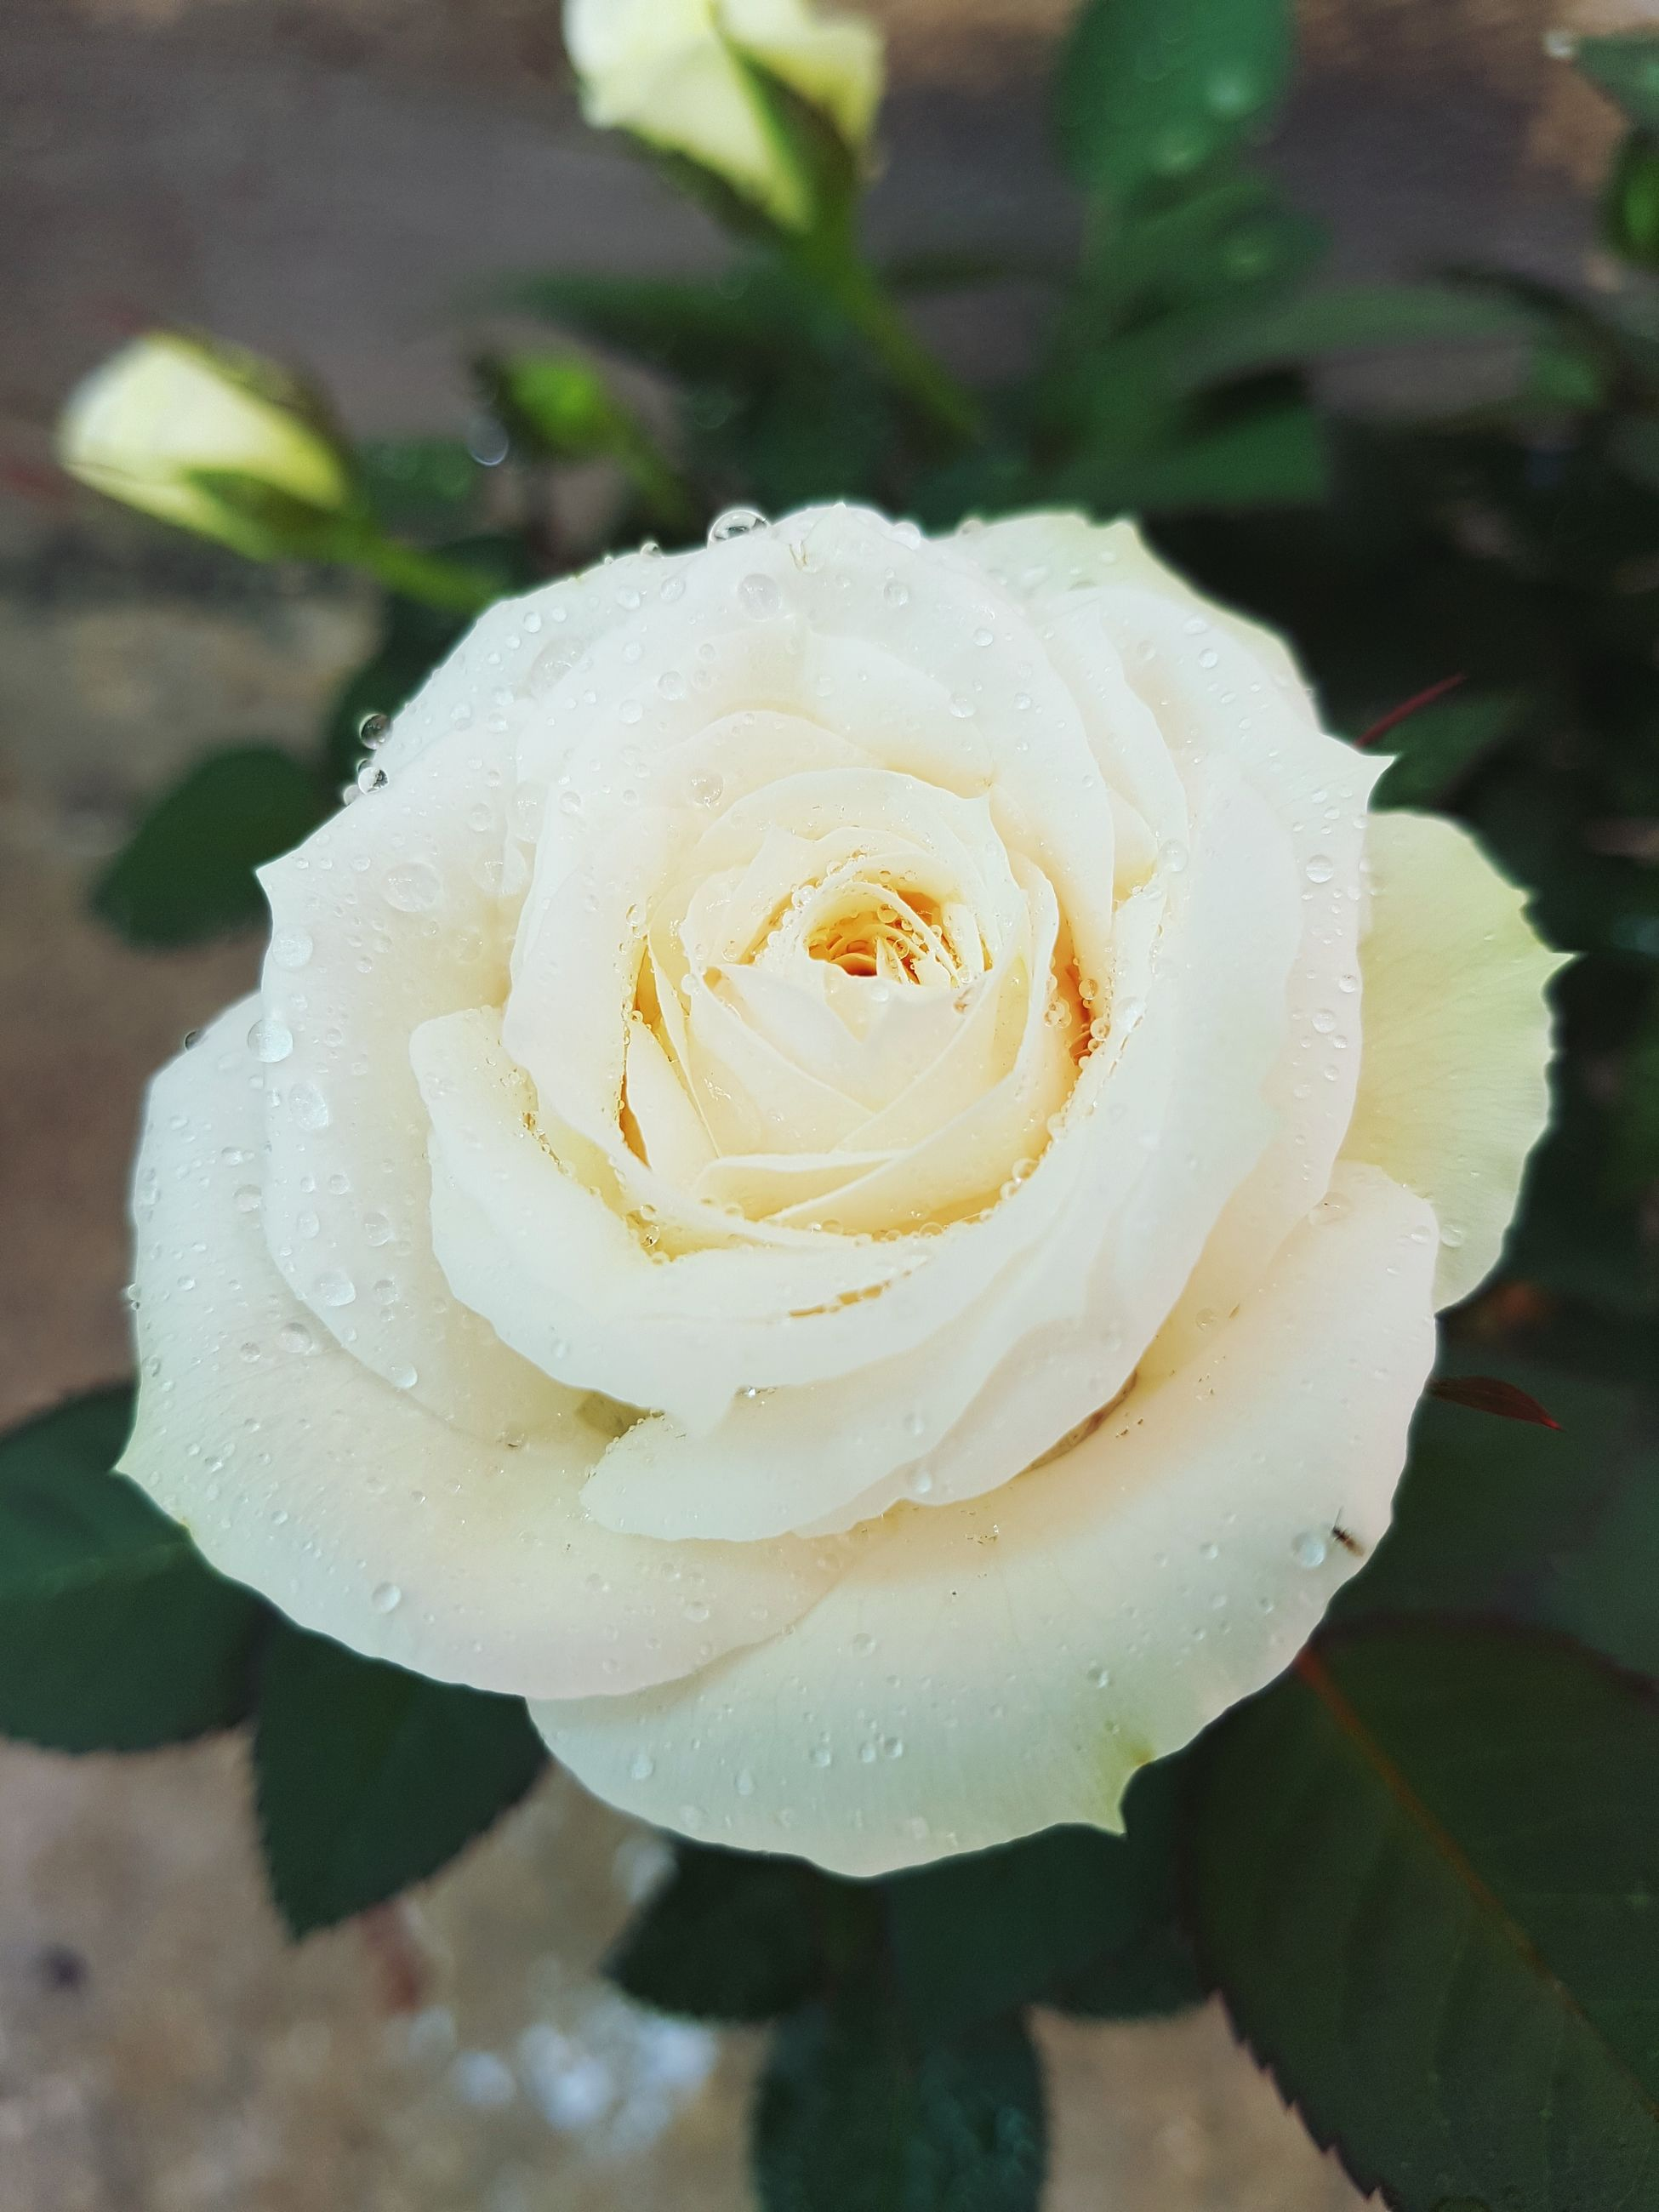 flower, rose - flower, petal, nature, beauty in nature, white color, flower head, plant, freshness, fragility, growth, close-up, drop, no people, wet, water, outdoors, day, blooming